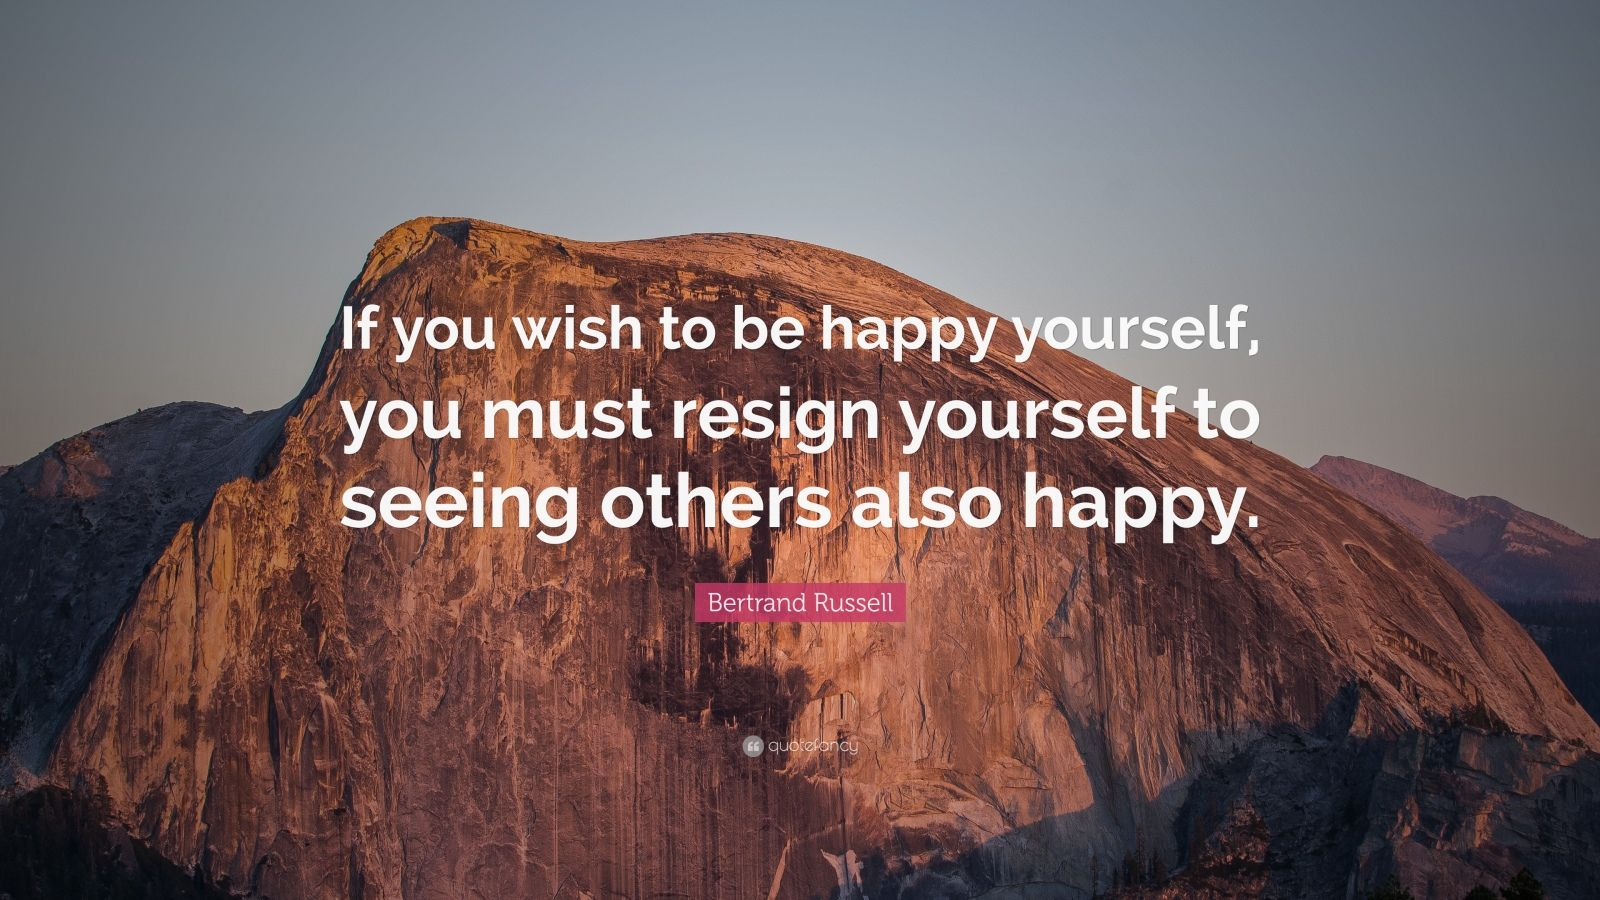 virtuous person is the happy person